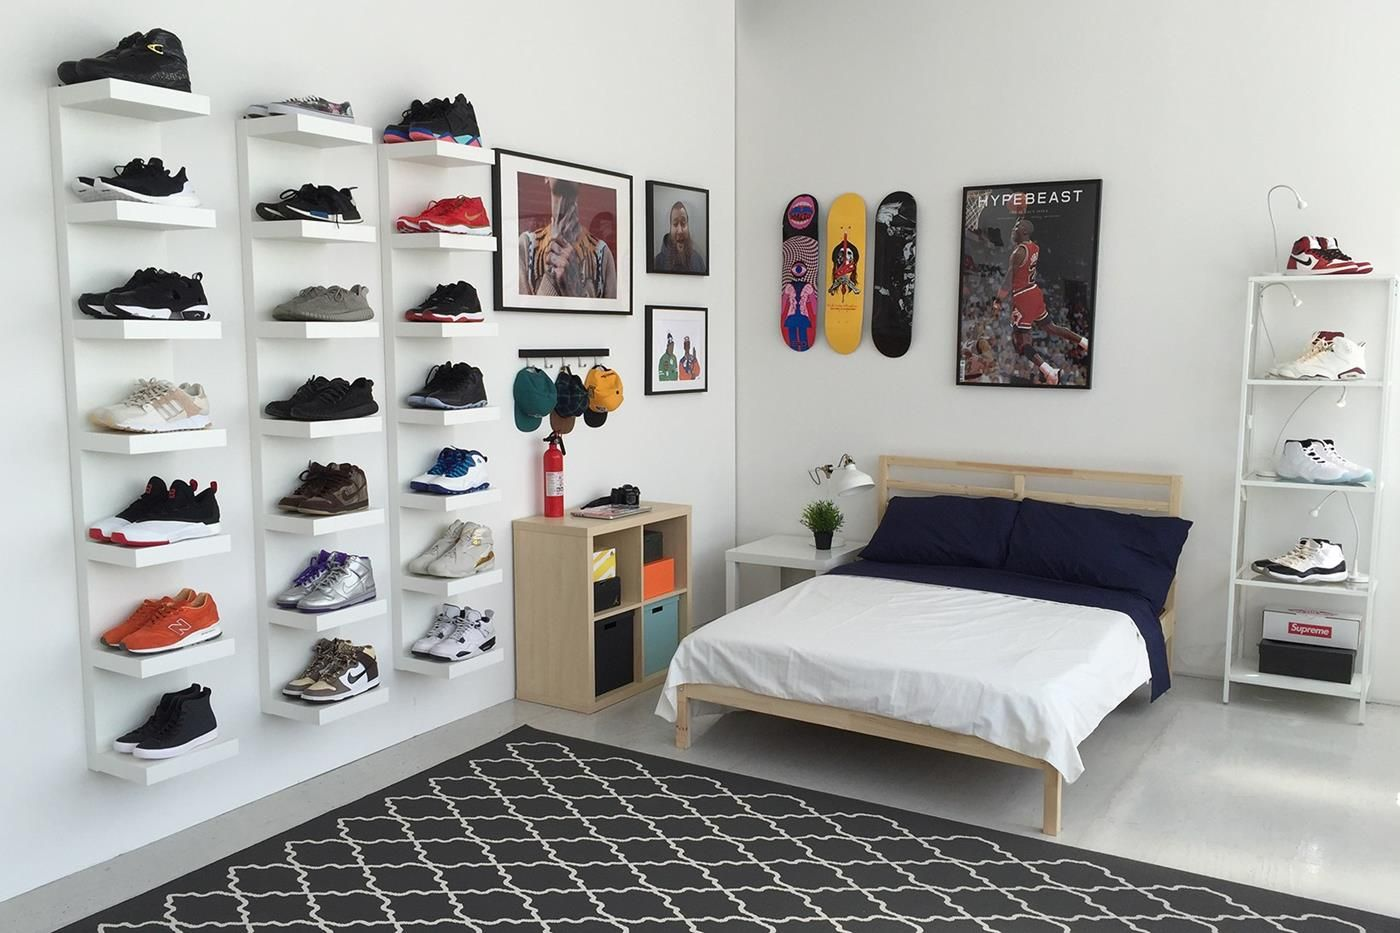 Ikea Teenager Zimmer · IKEA® And HYPEBEAST Design The Ideal Sneakerhead  Bedroom(18) Kinderzimmer, Zuhause,